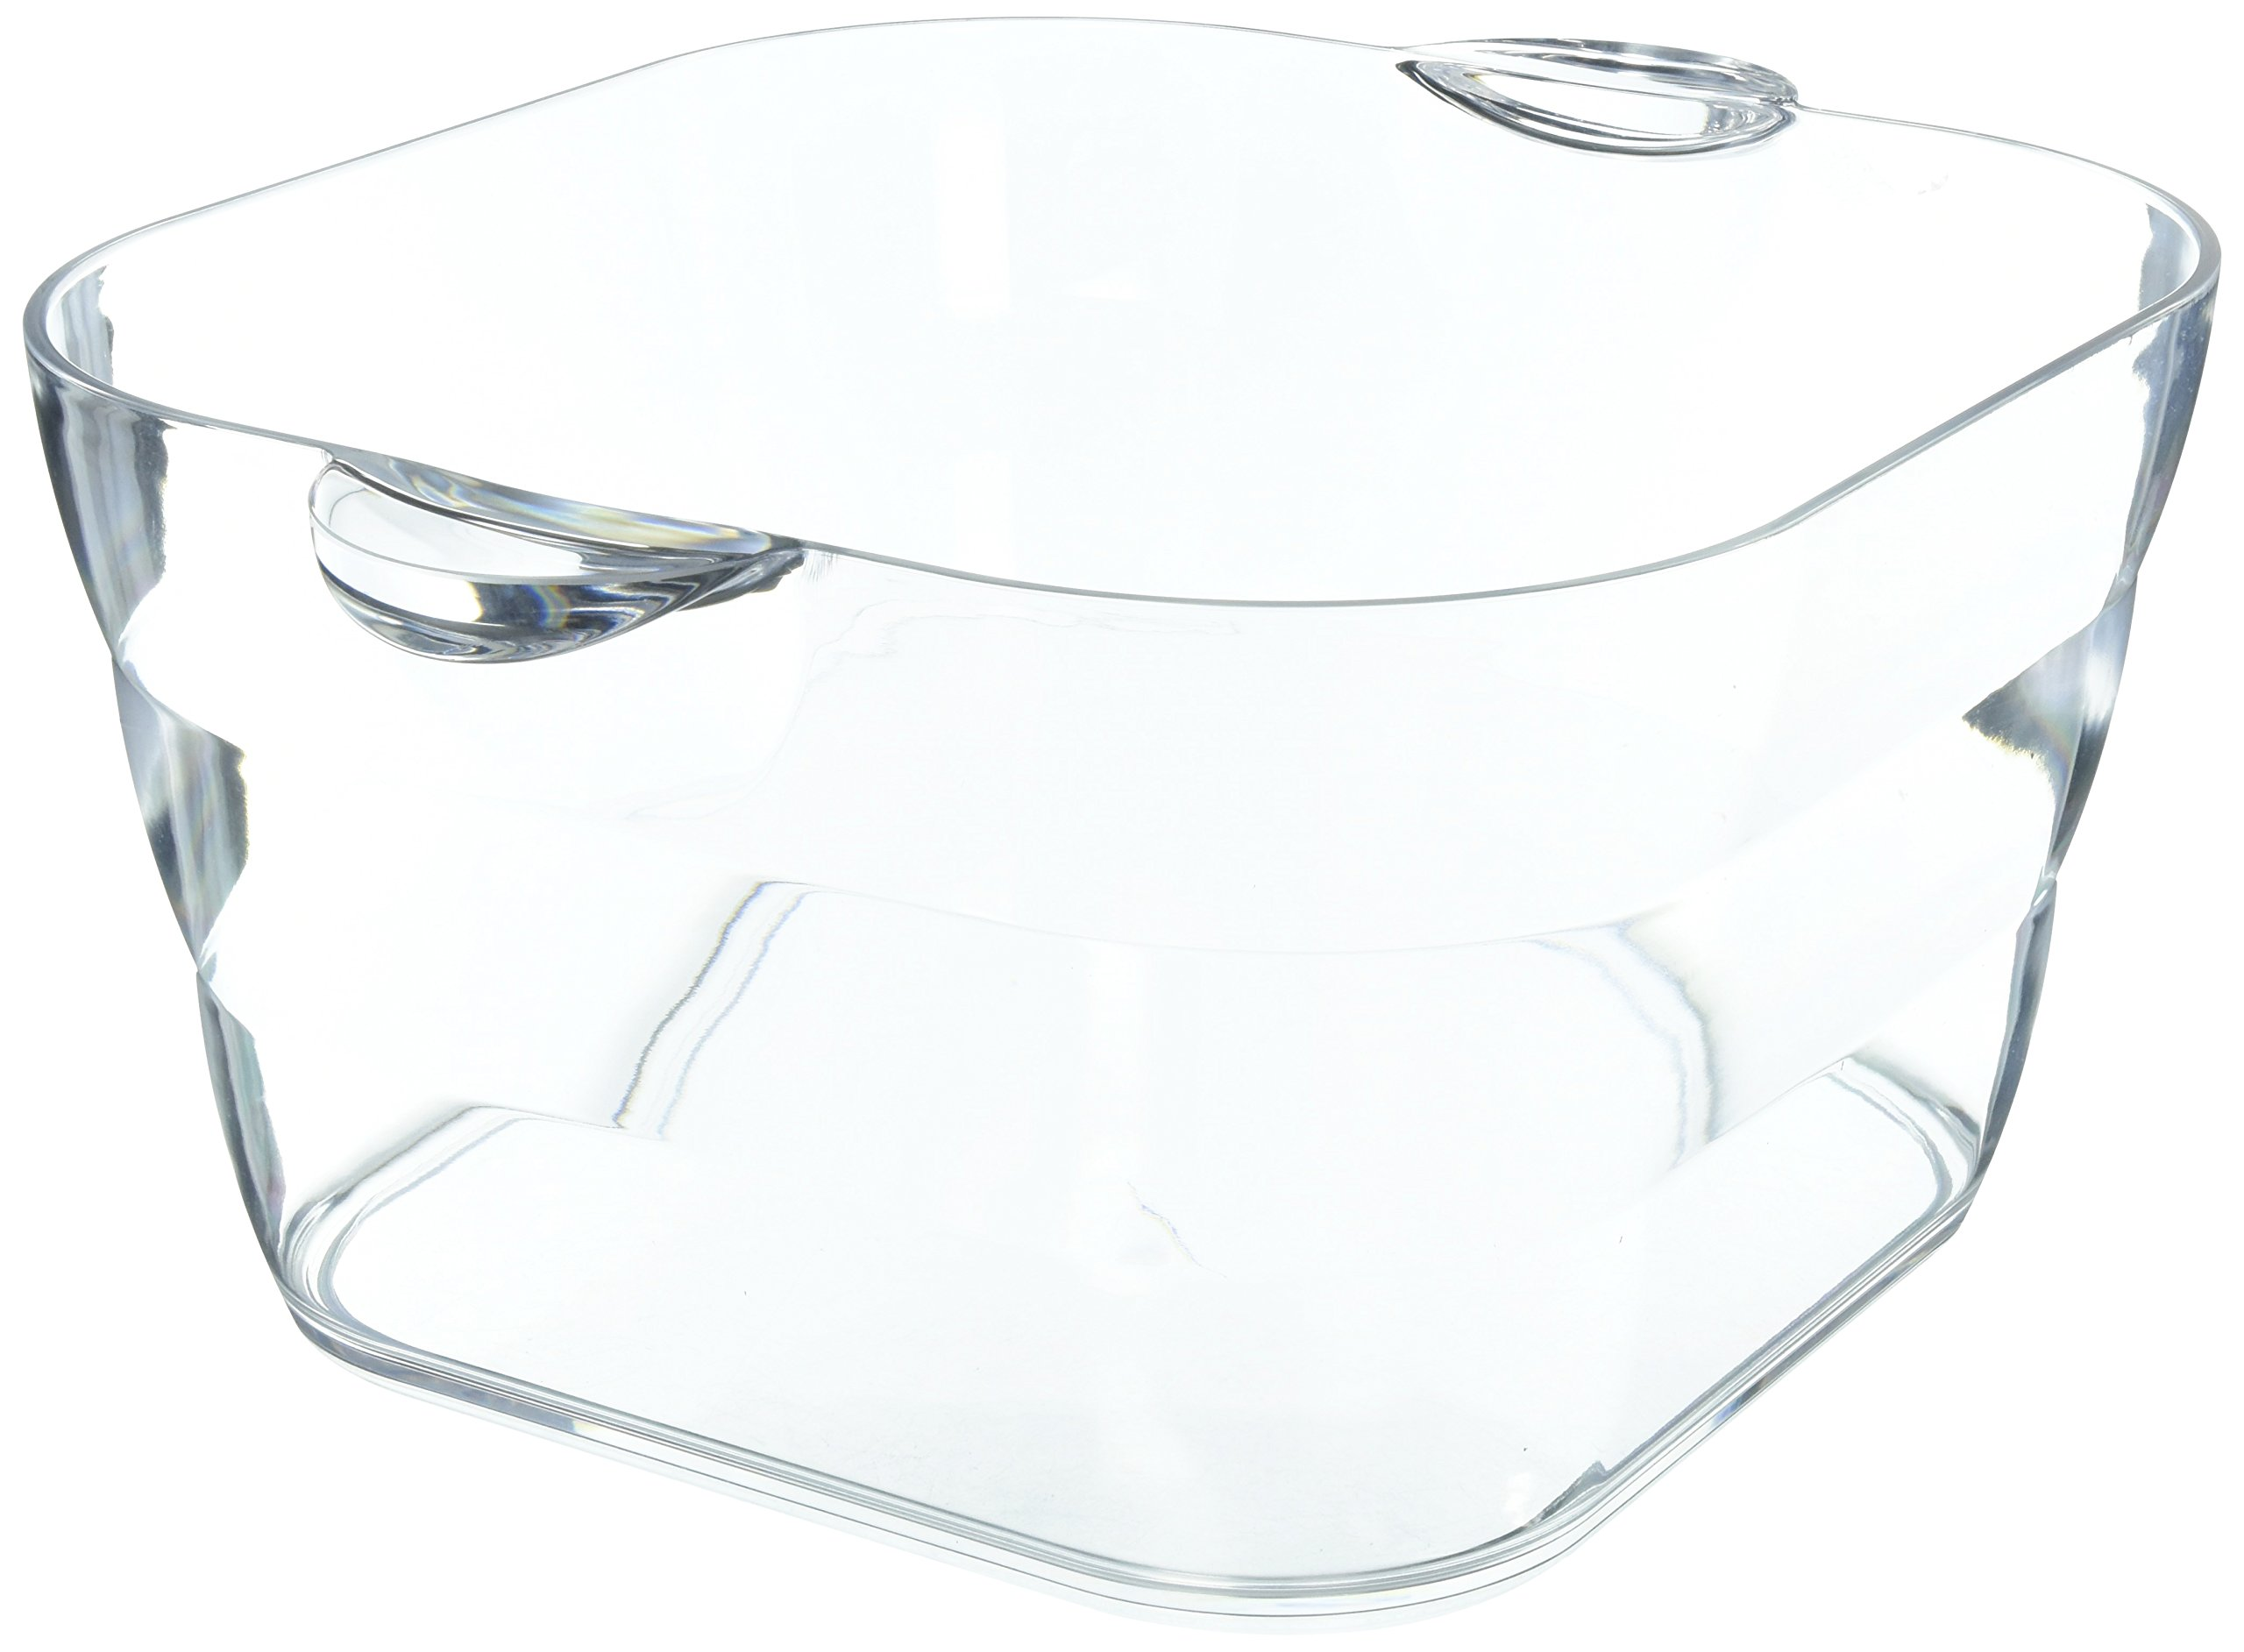 Prodyne AB-18-A Big Square Party Beverage Tub, Clear by Prodyne